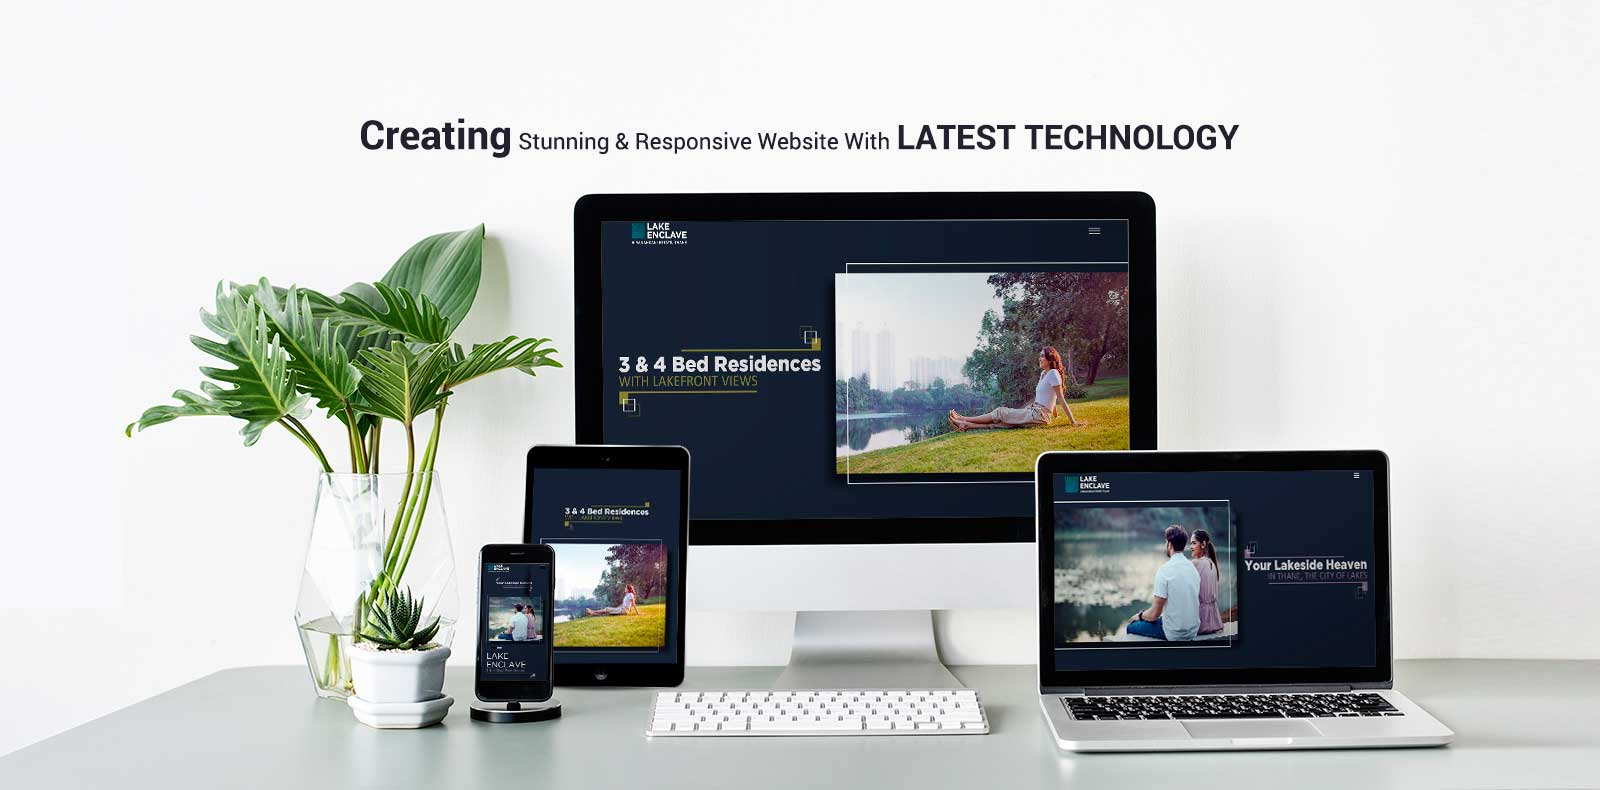 Responsive Websites with Latest Technology